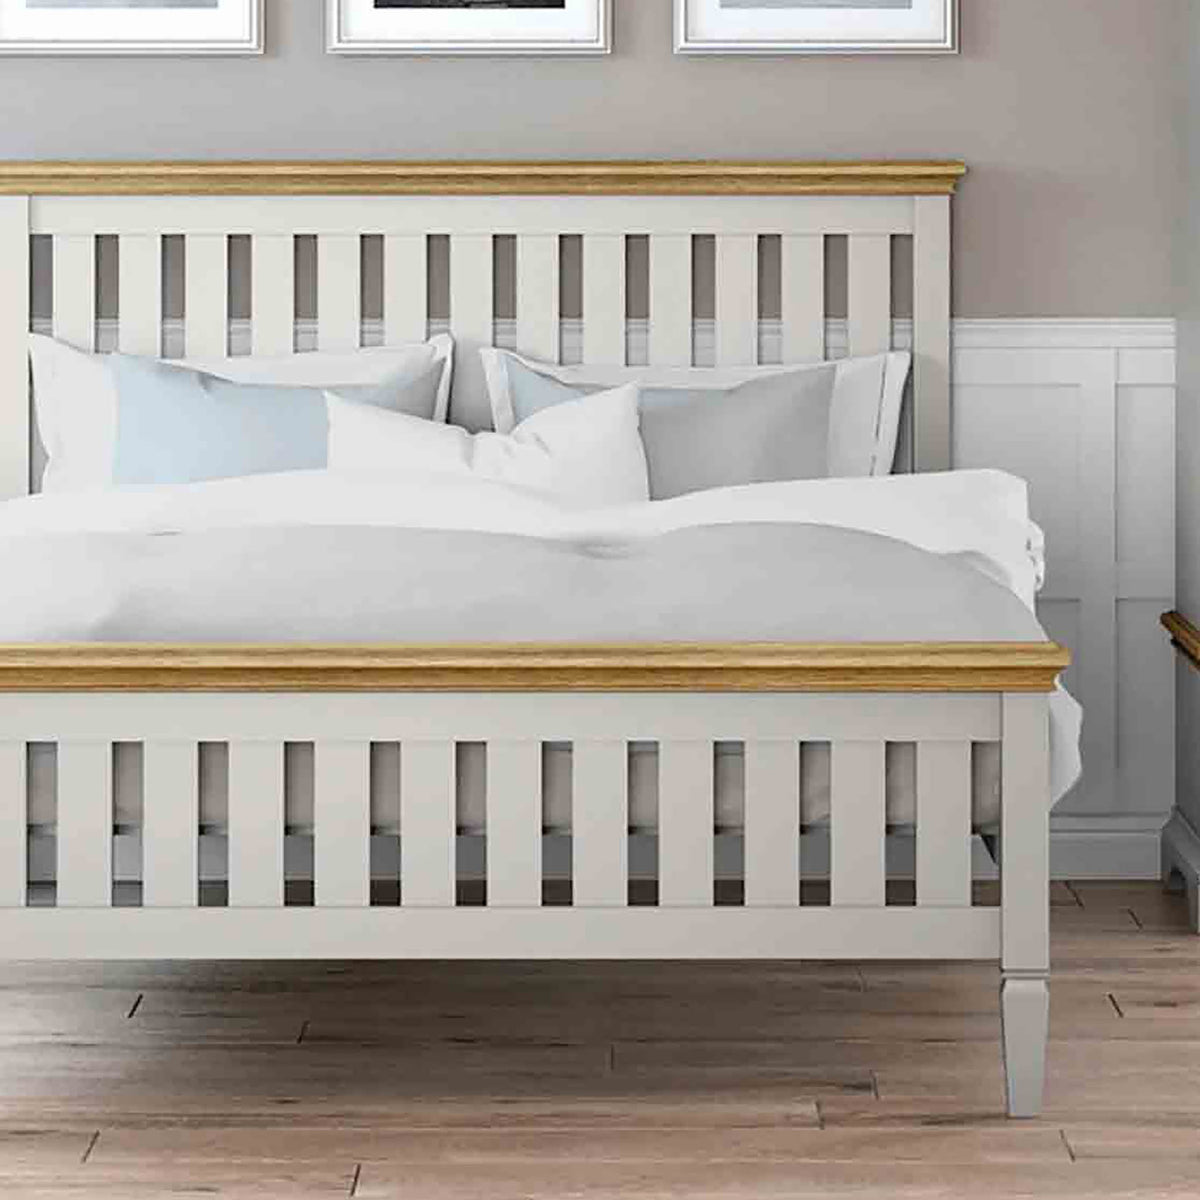 Normandy Grey 5' Bed Frame - Close Up